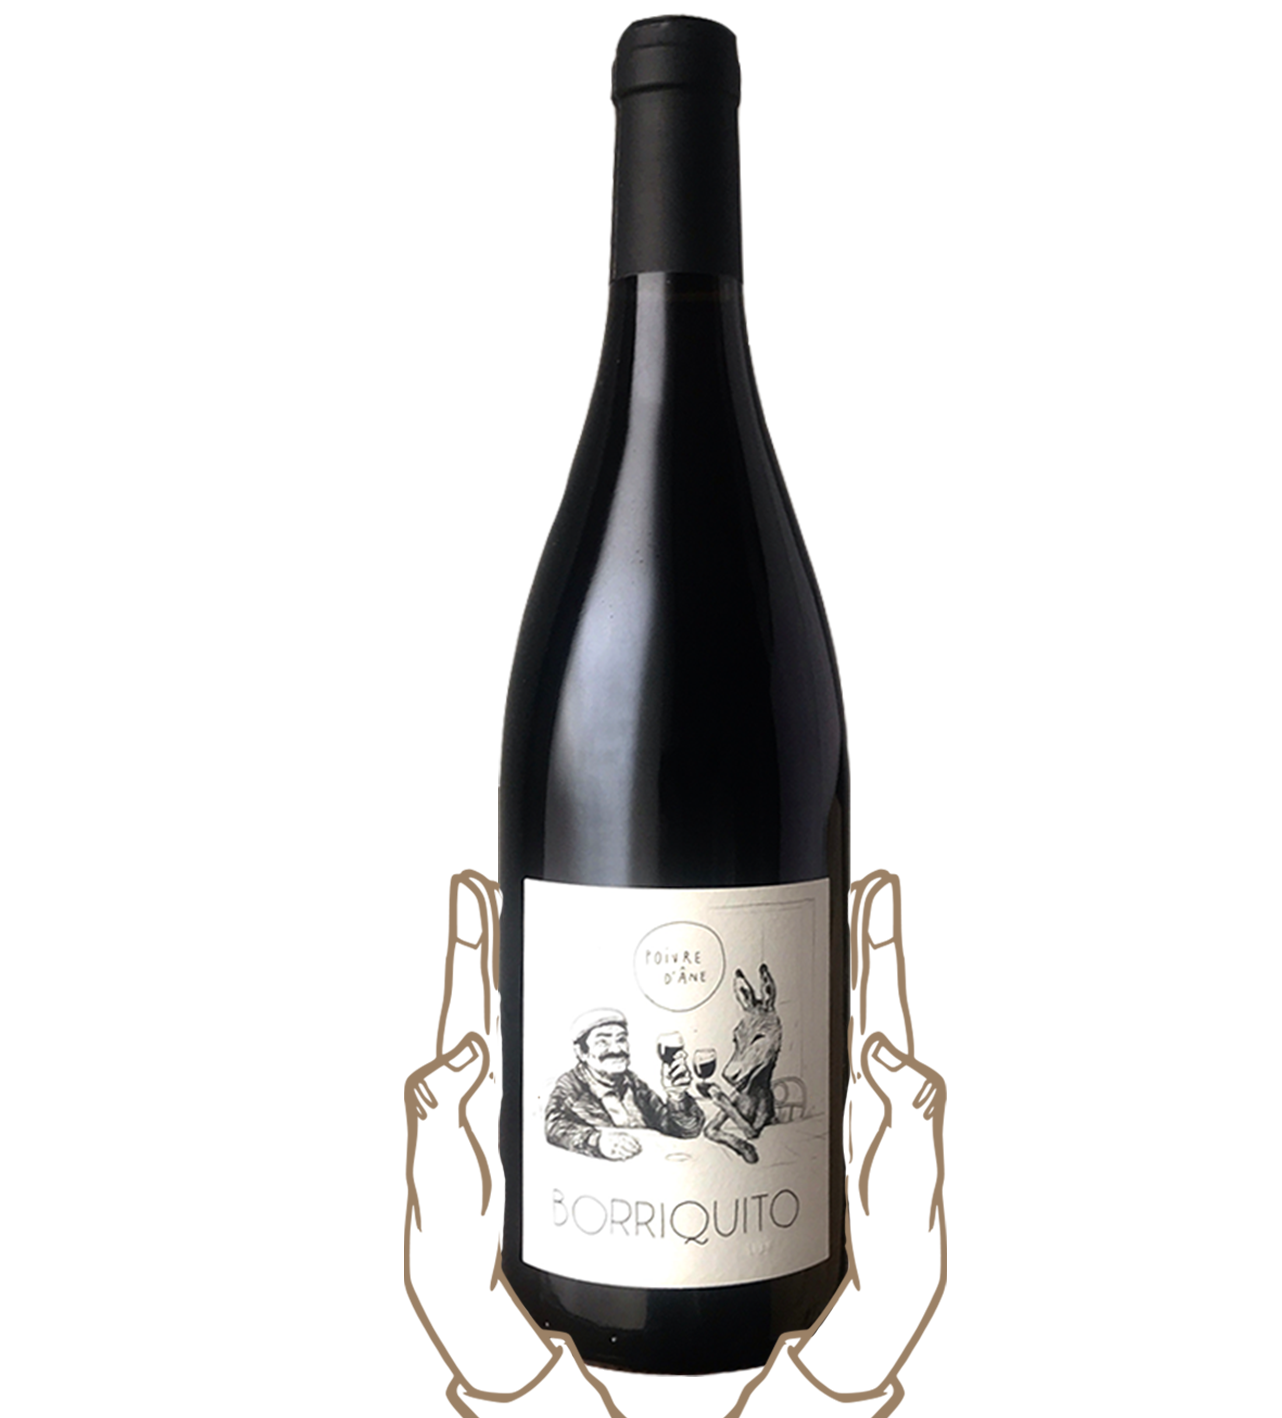 Borriquito is a wine from poivre d'ane